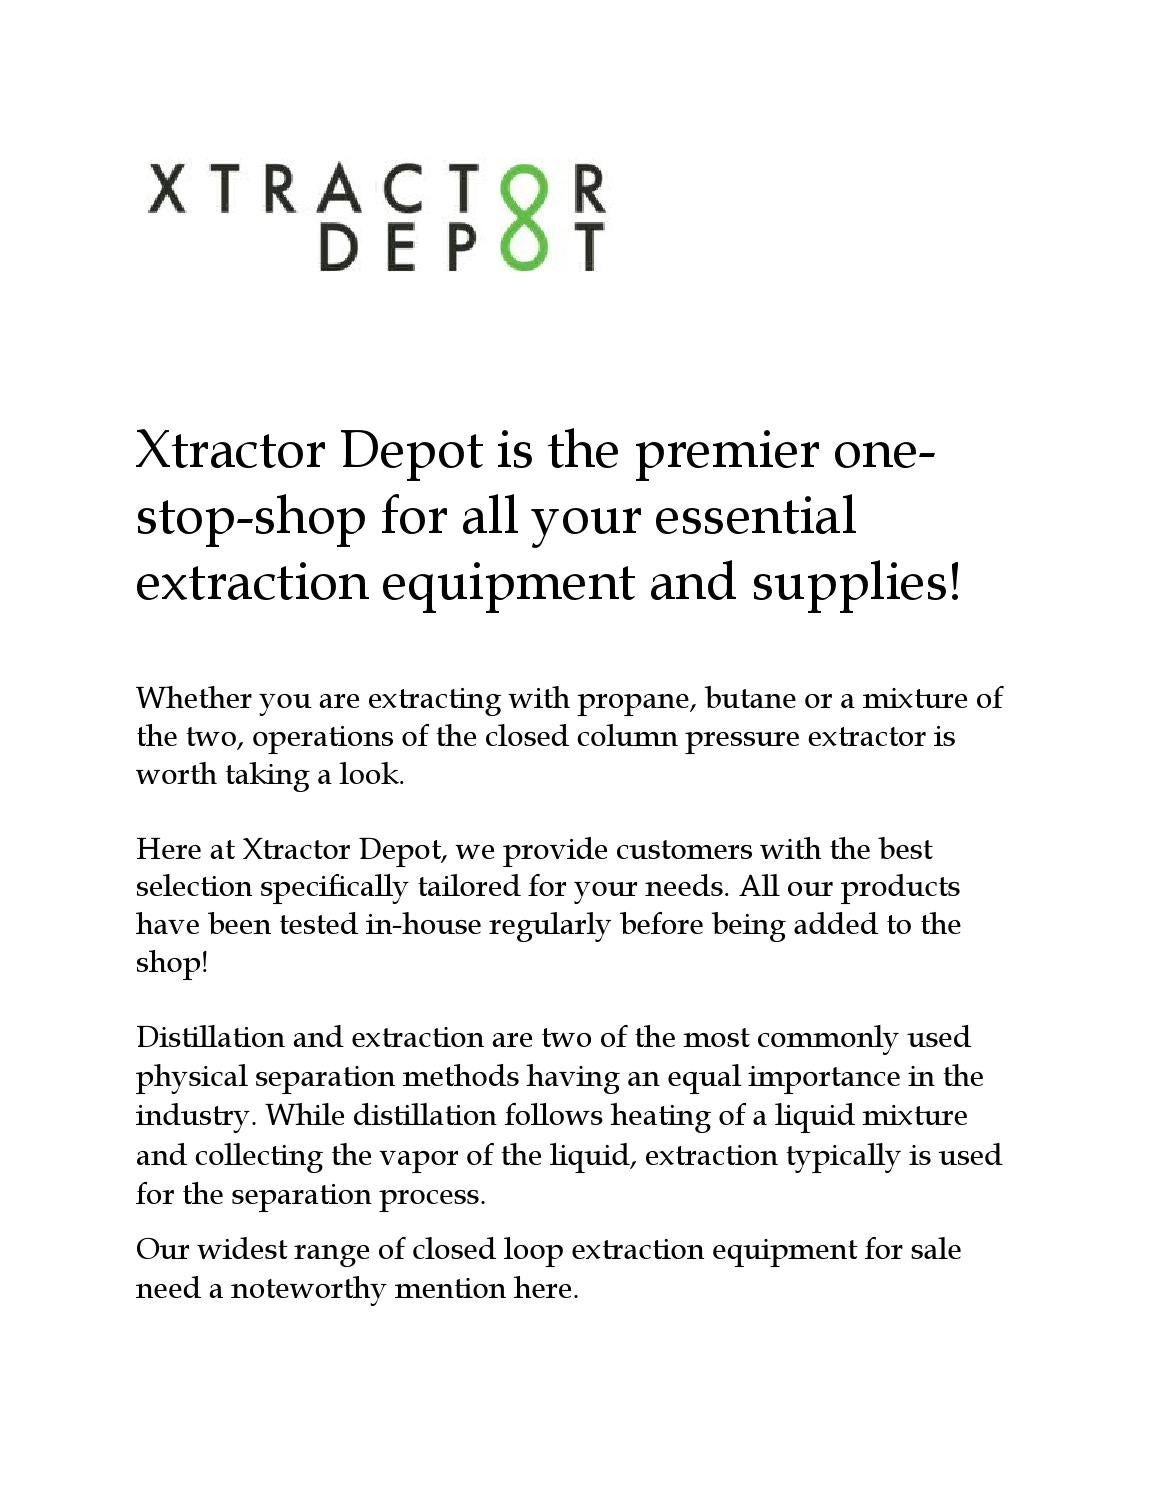 Closed loop extraction equipment for sale by Andrew Yoon - issuu